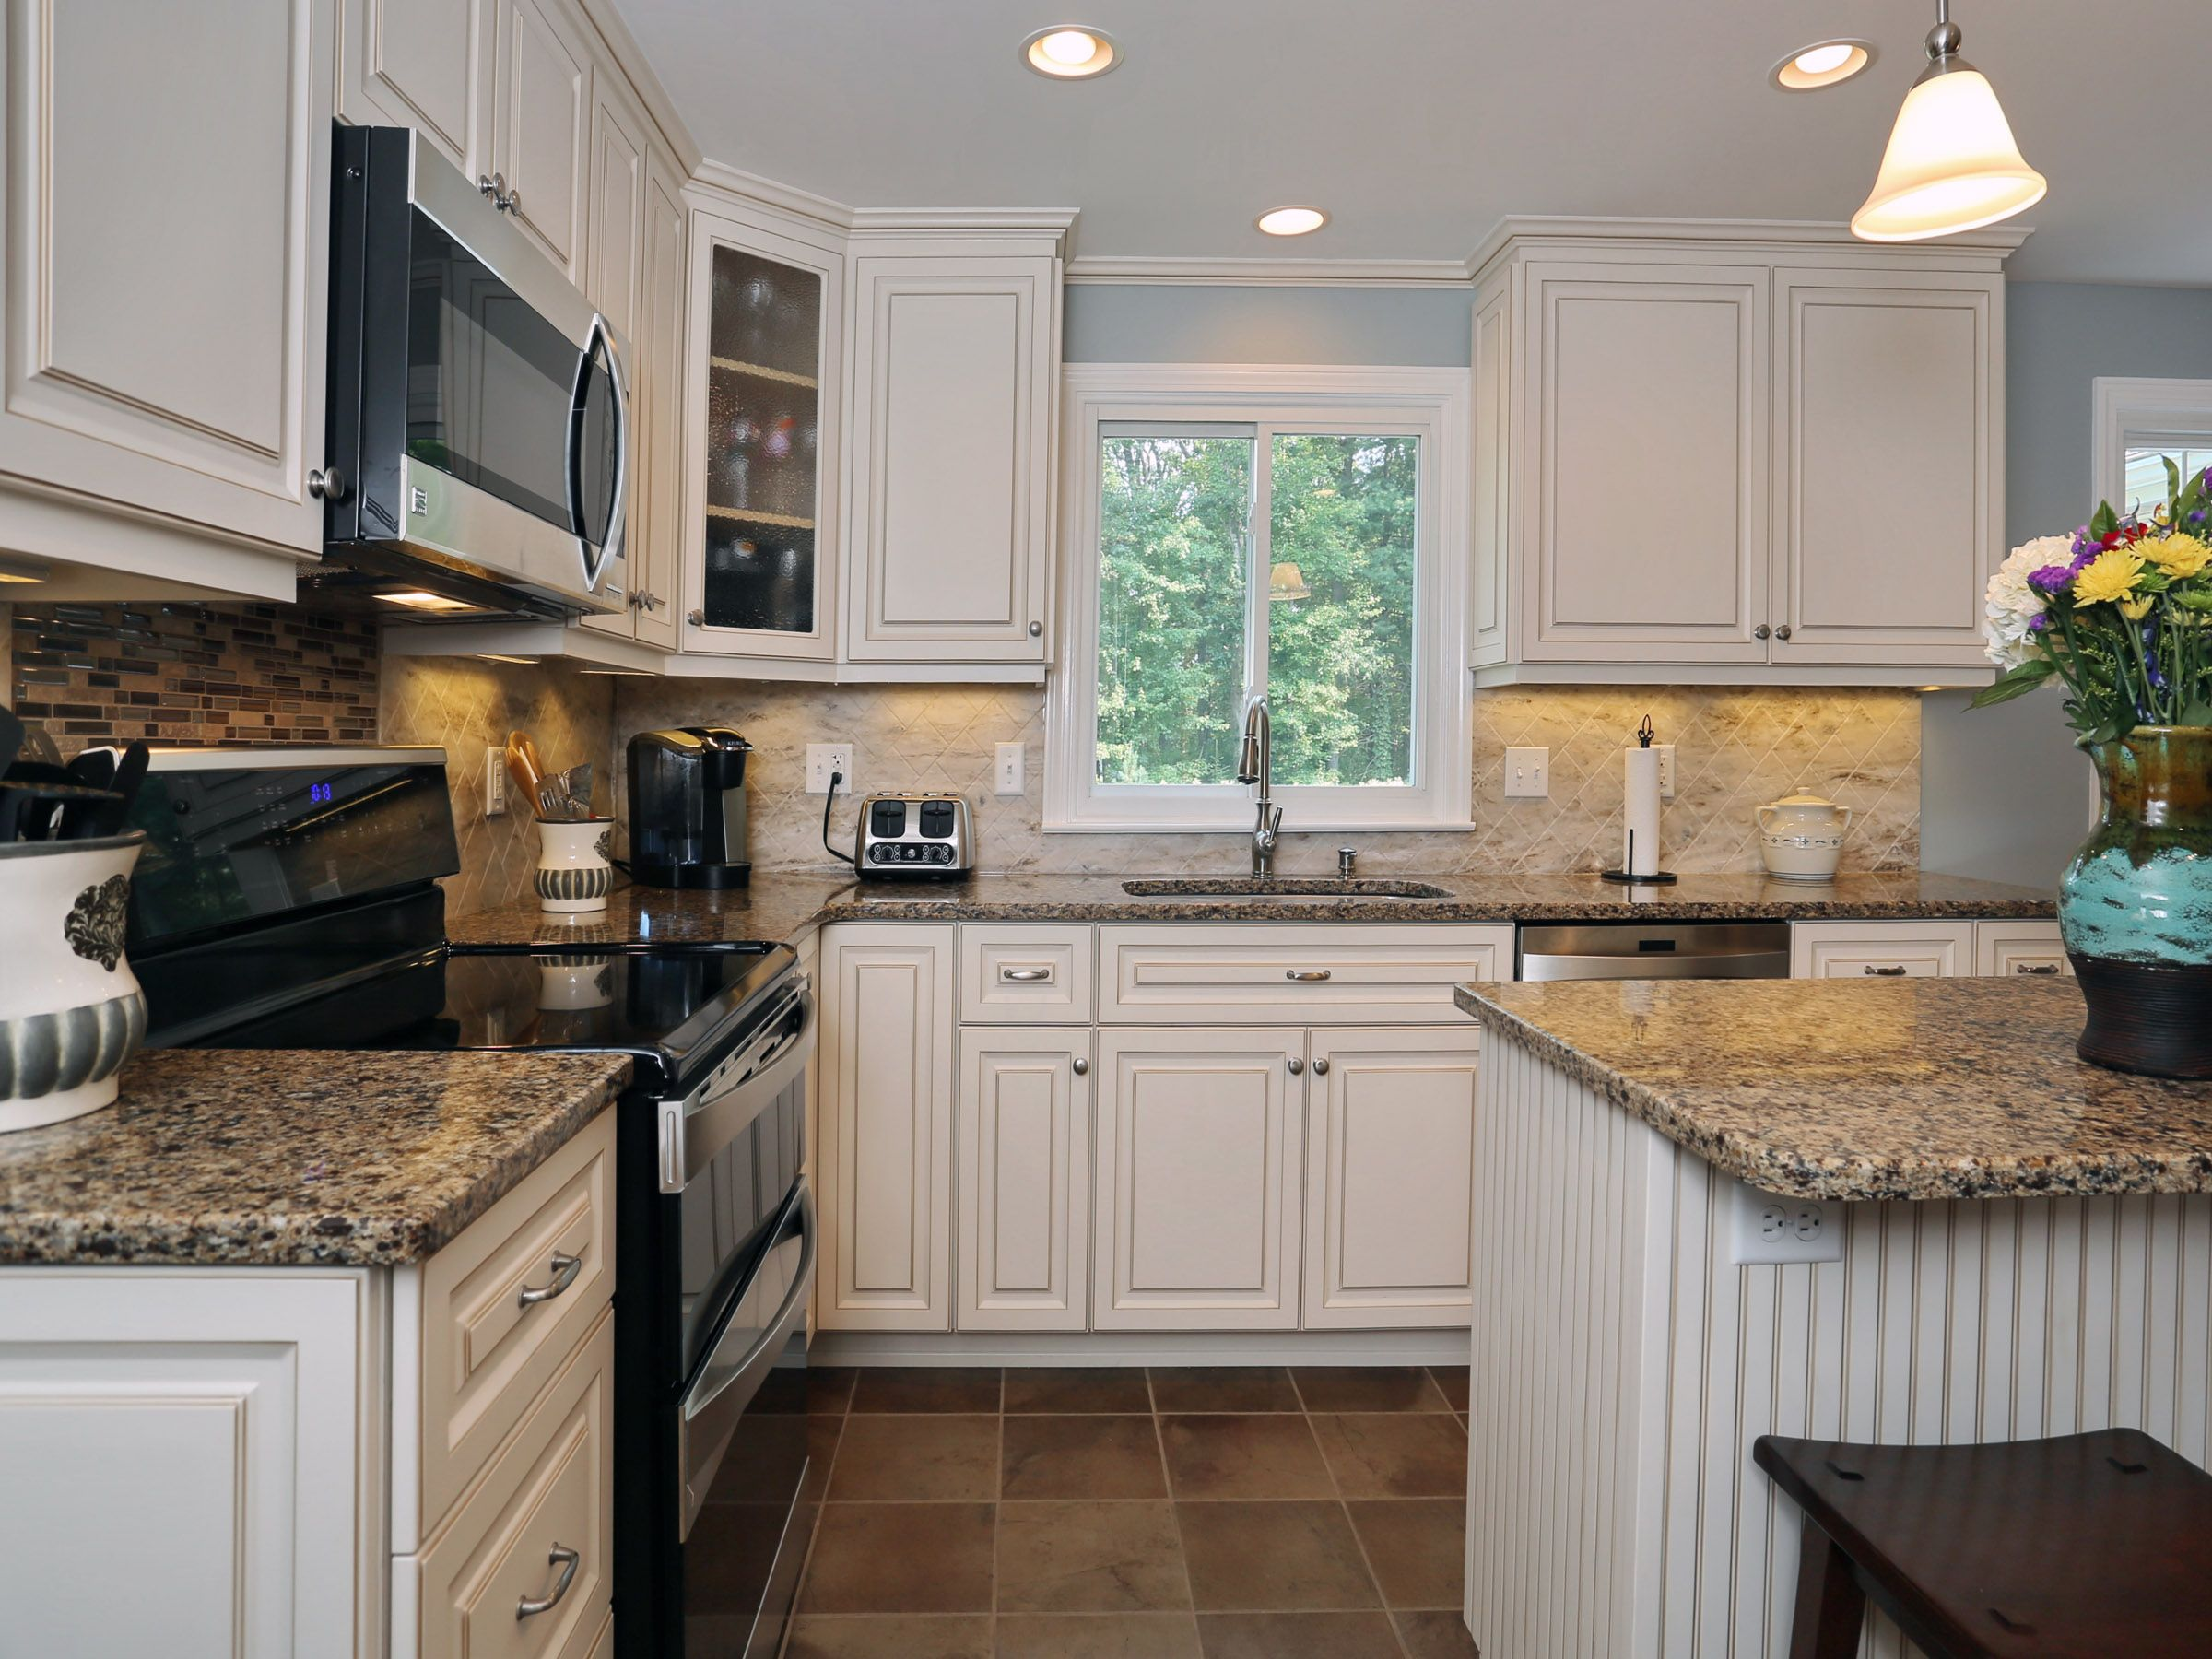 Have You Ever Seen a Canterbury Kitchen? Antique white